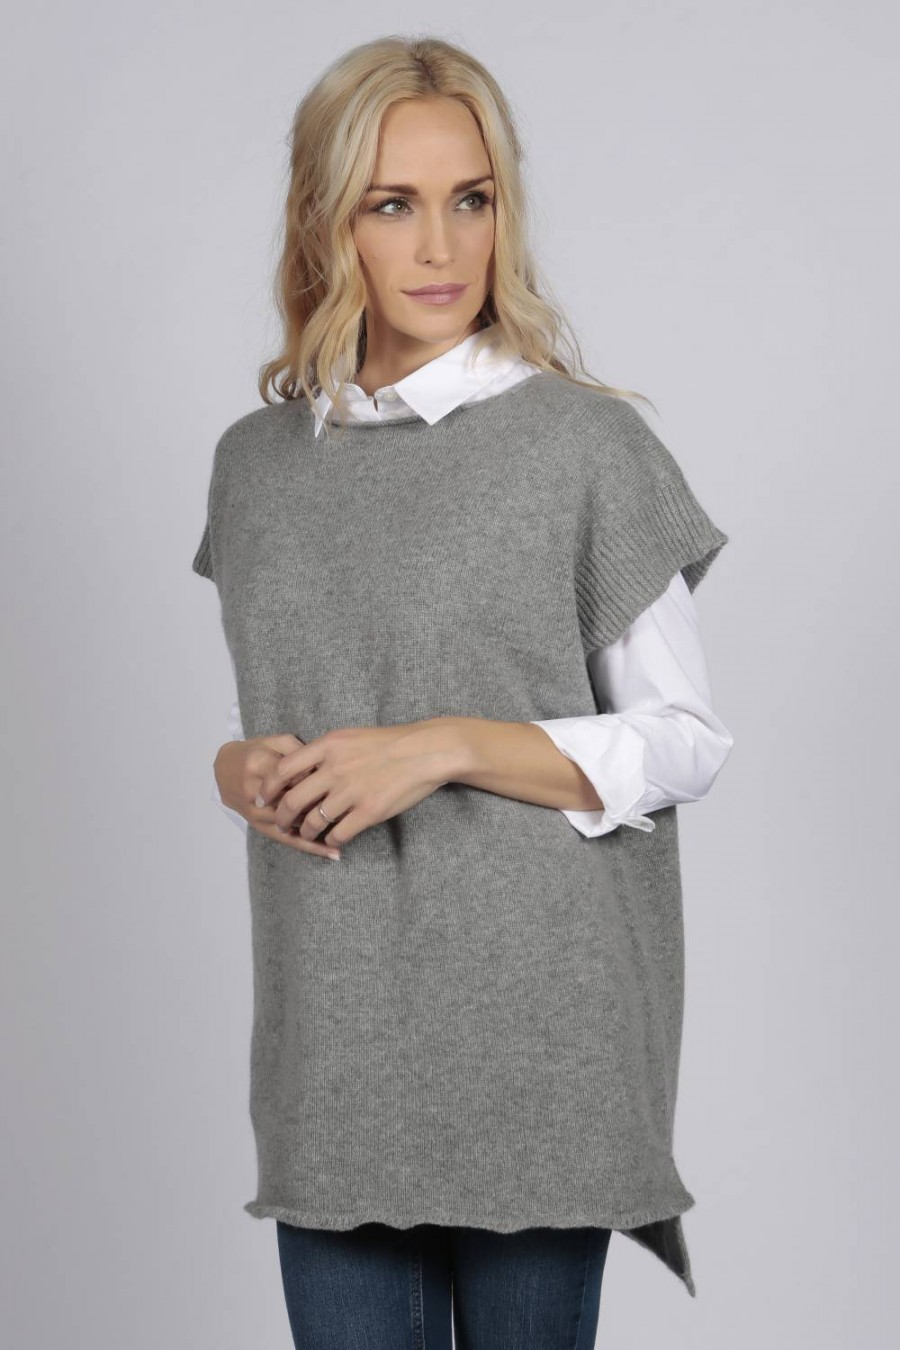 869f062292215 Light grey women s pure cashmere sleeveless sweater front